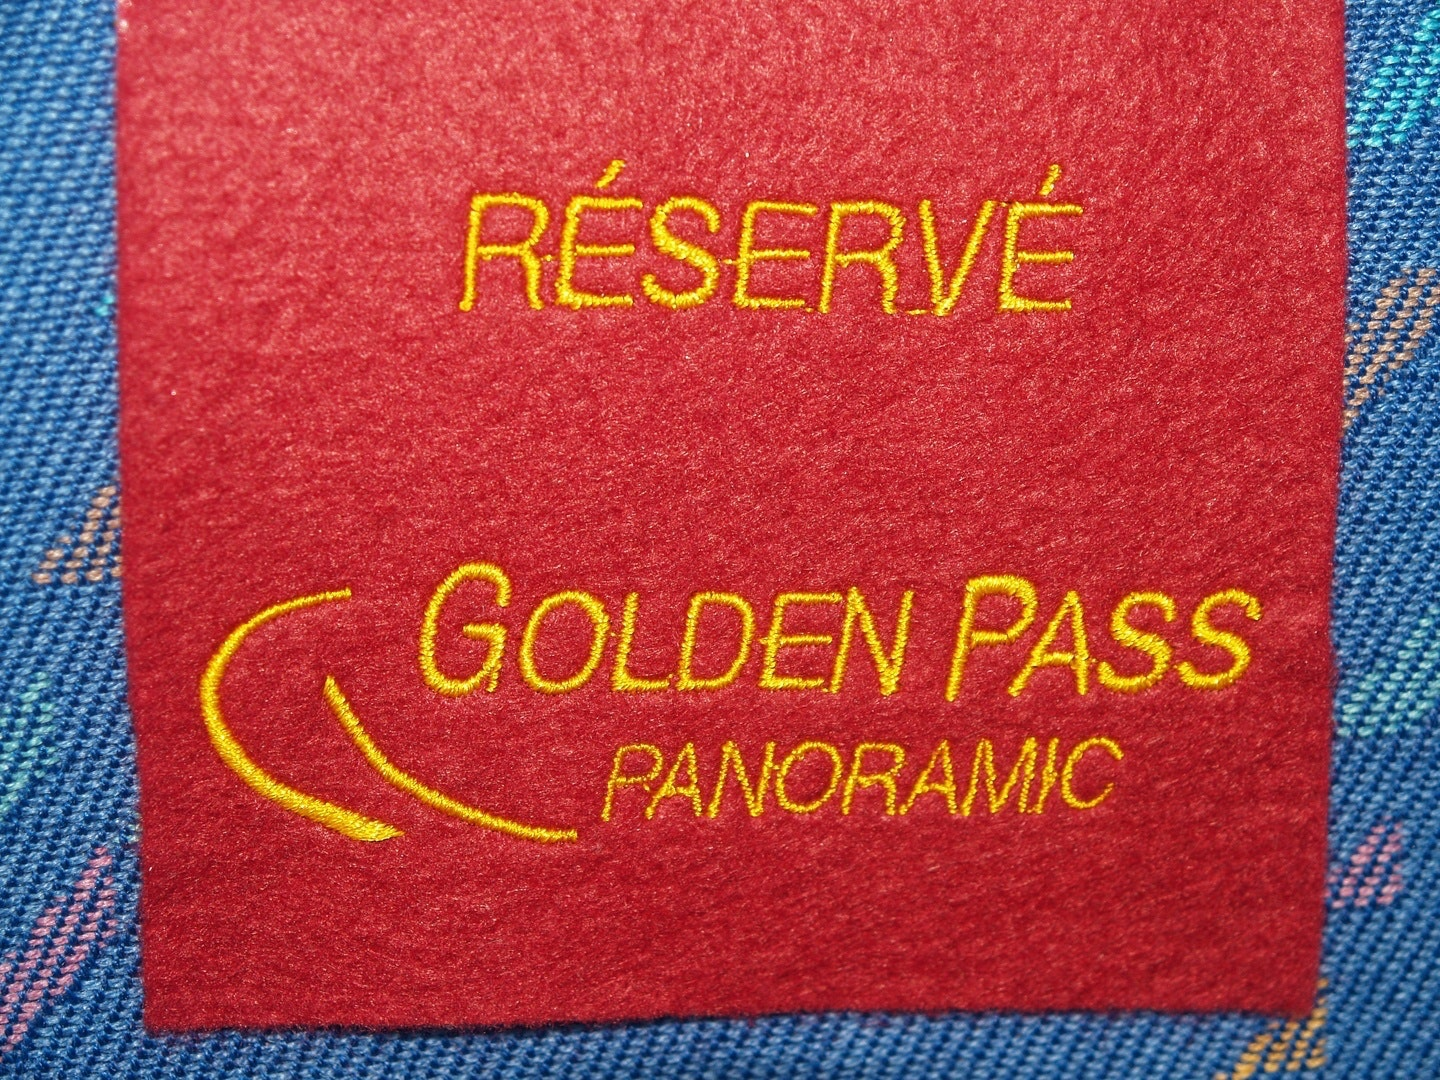 Seat reservations in the Golden Pass